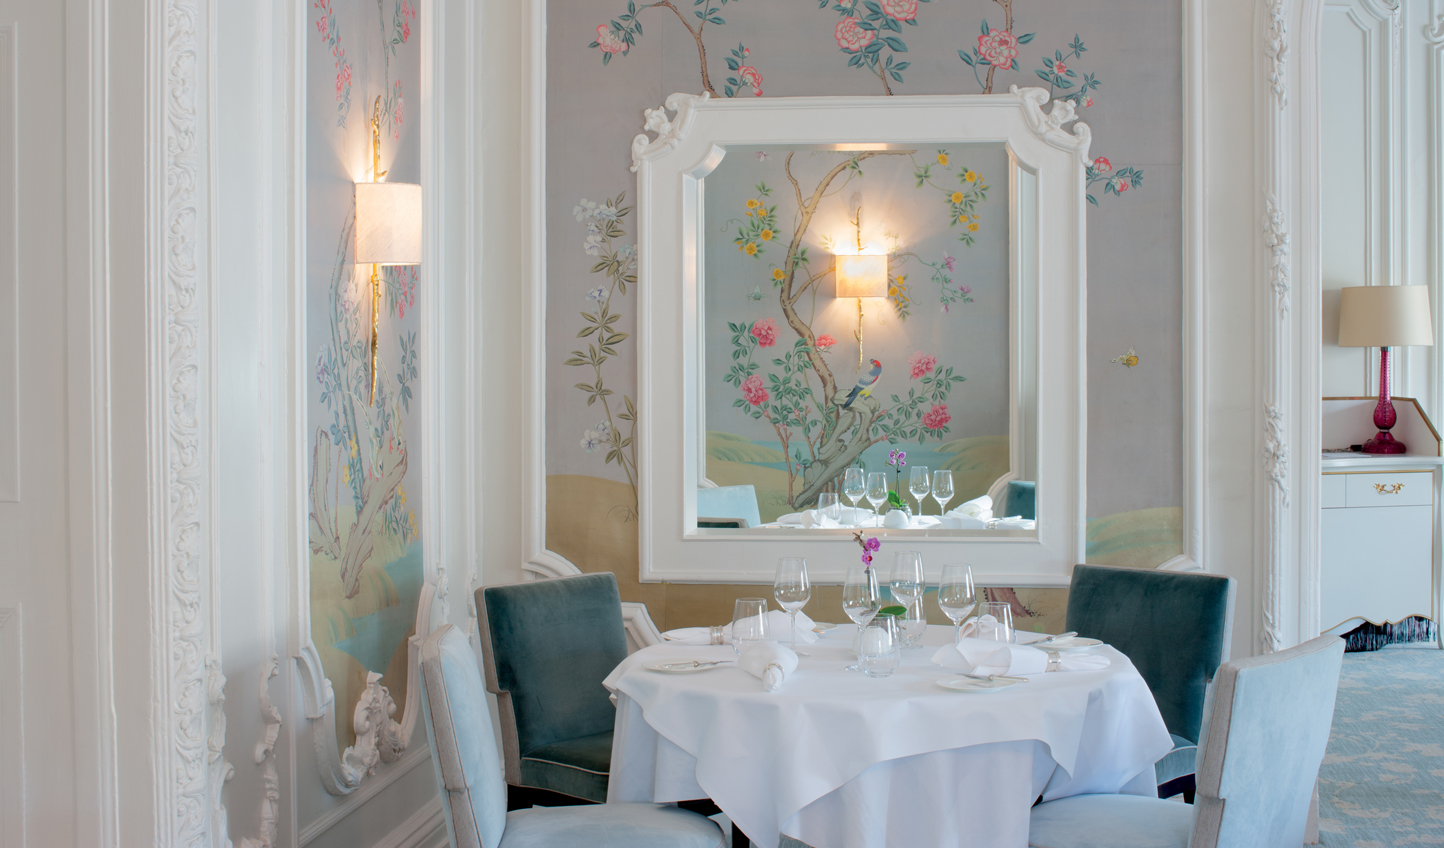 Dine at Pompadour and experience all the glamour of Versailles in the heart of Edinburgh